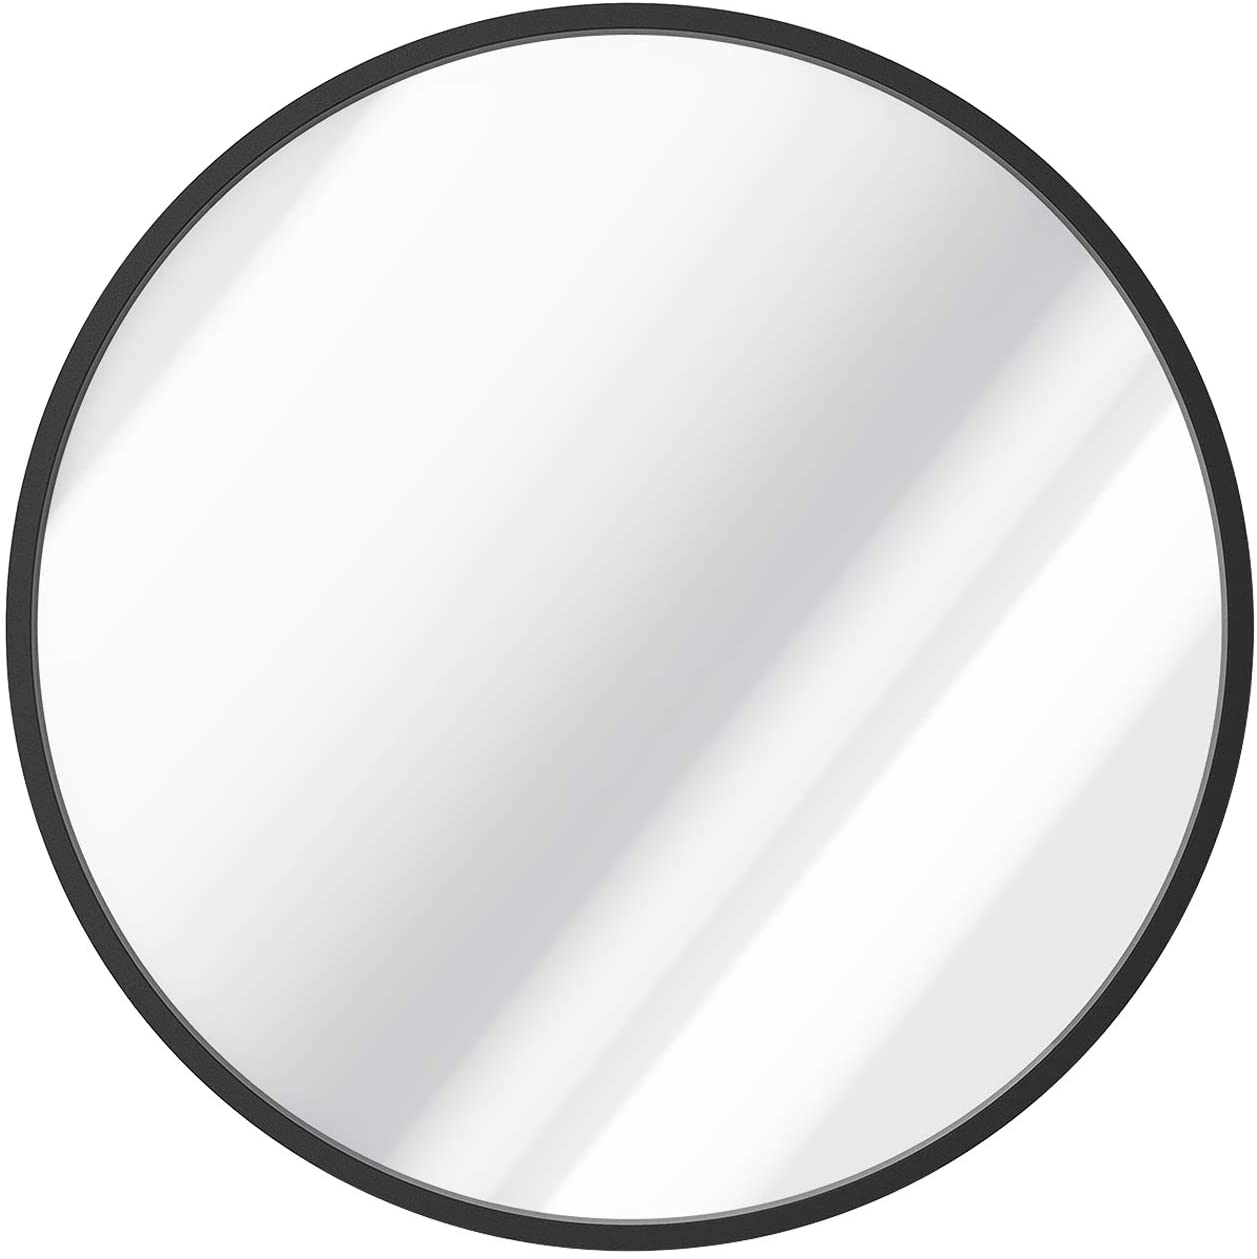 SHINESTAR 30 Inch Round Mirror for Wall Decor, Matte Black Metal Frame, Large Size Circle Vanity Mirror for Bathroom, Bedroom, Living Room, Entryway, Modern Style